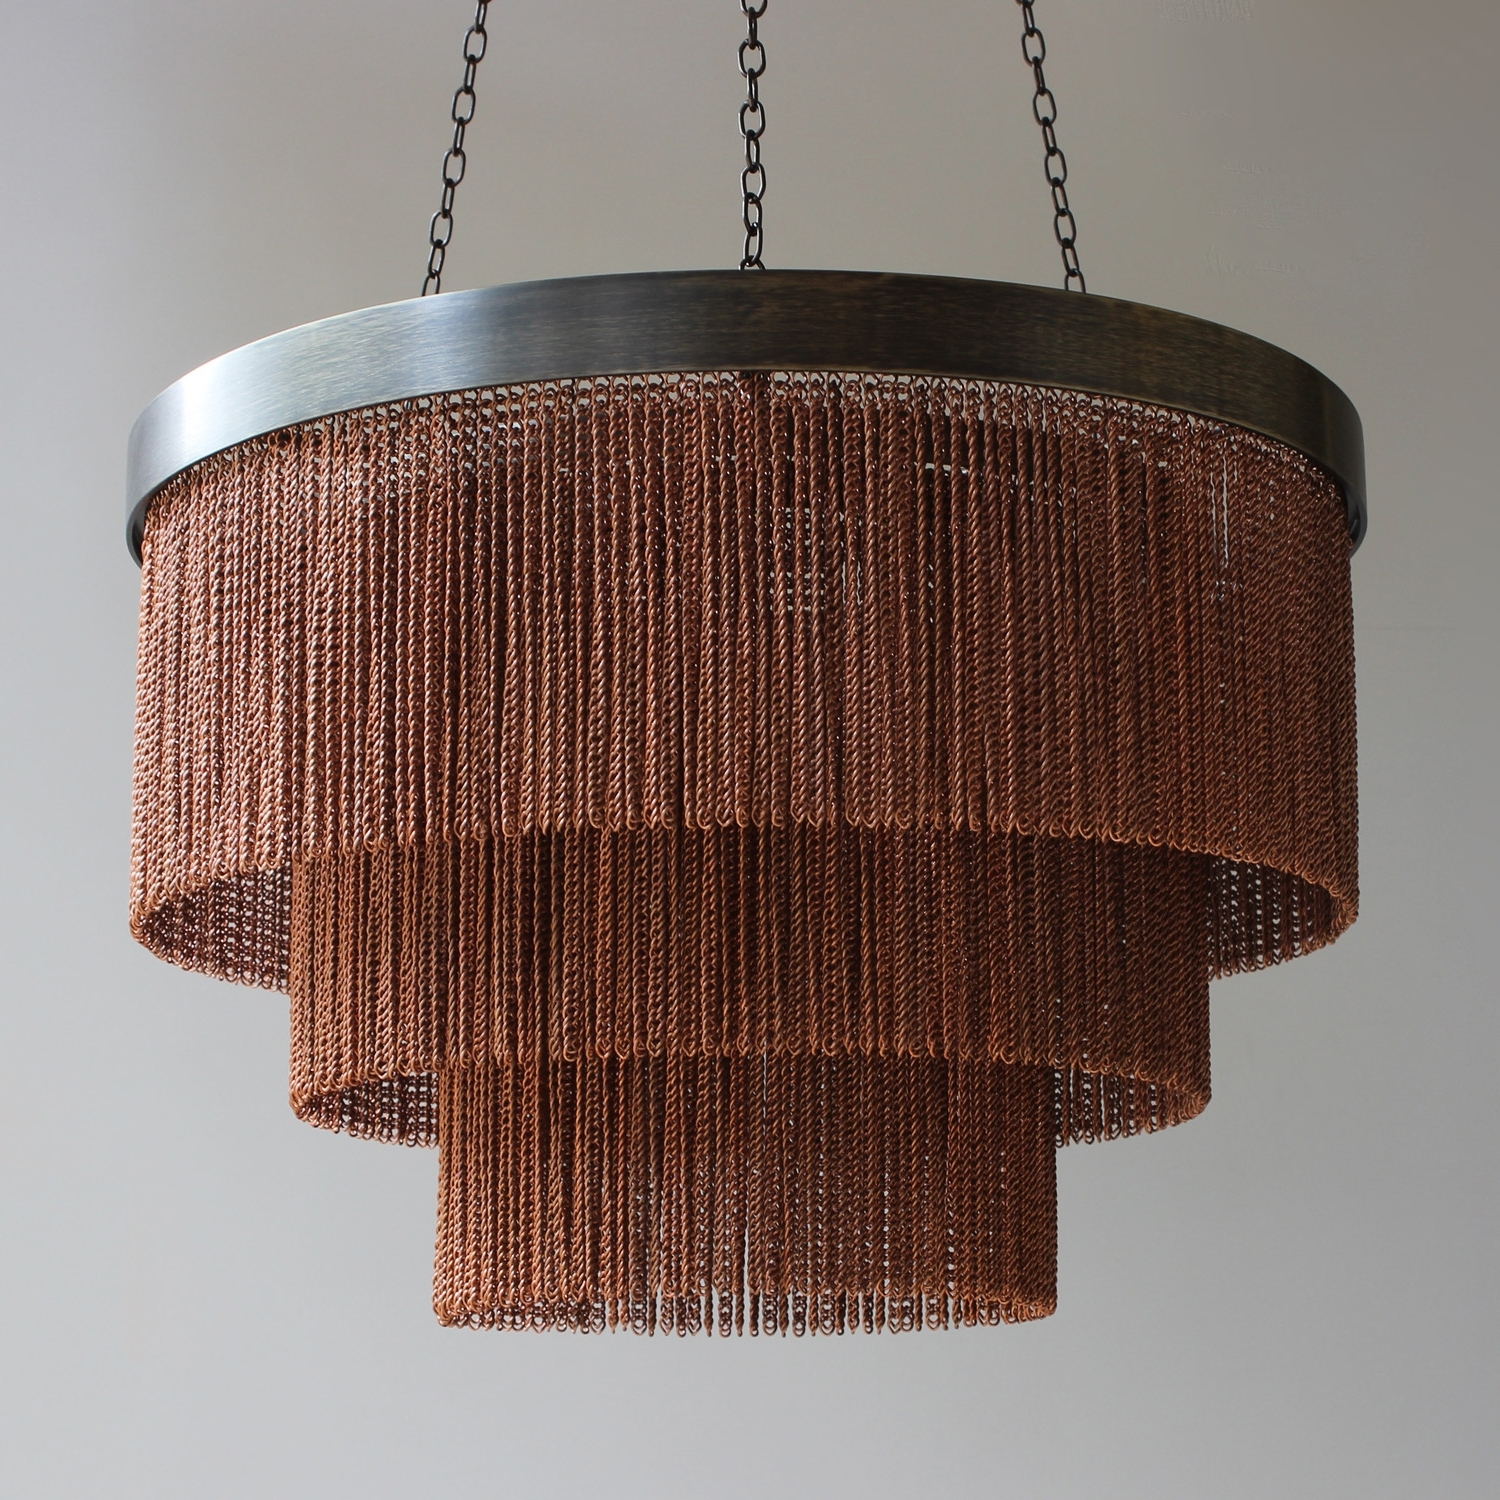 Most Recently Released Copper Chain Shallow Chandelier – Tigermoth Lighting Throughout Copper Chandeliers (View 6 of 15)